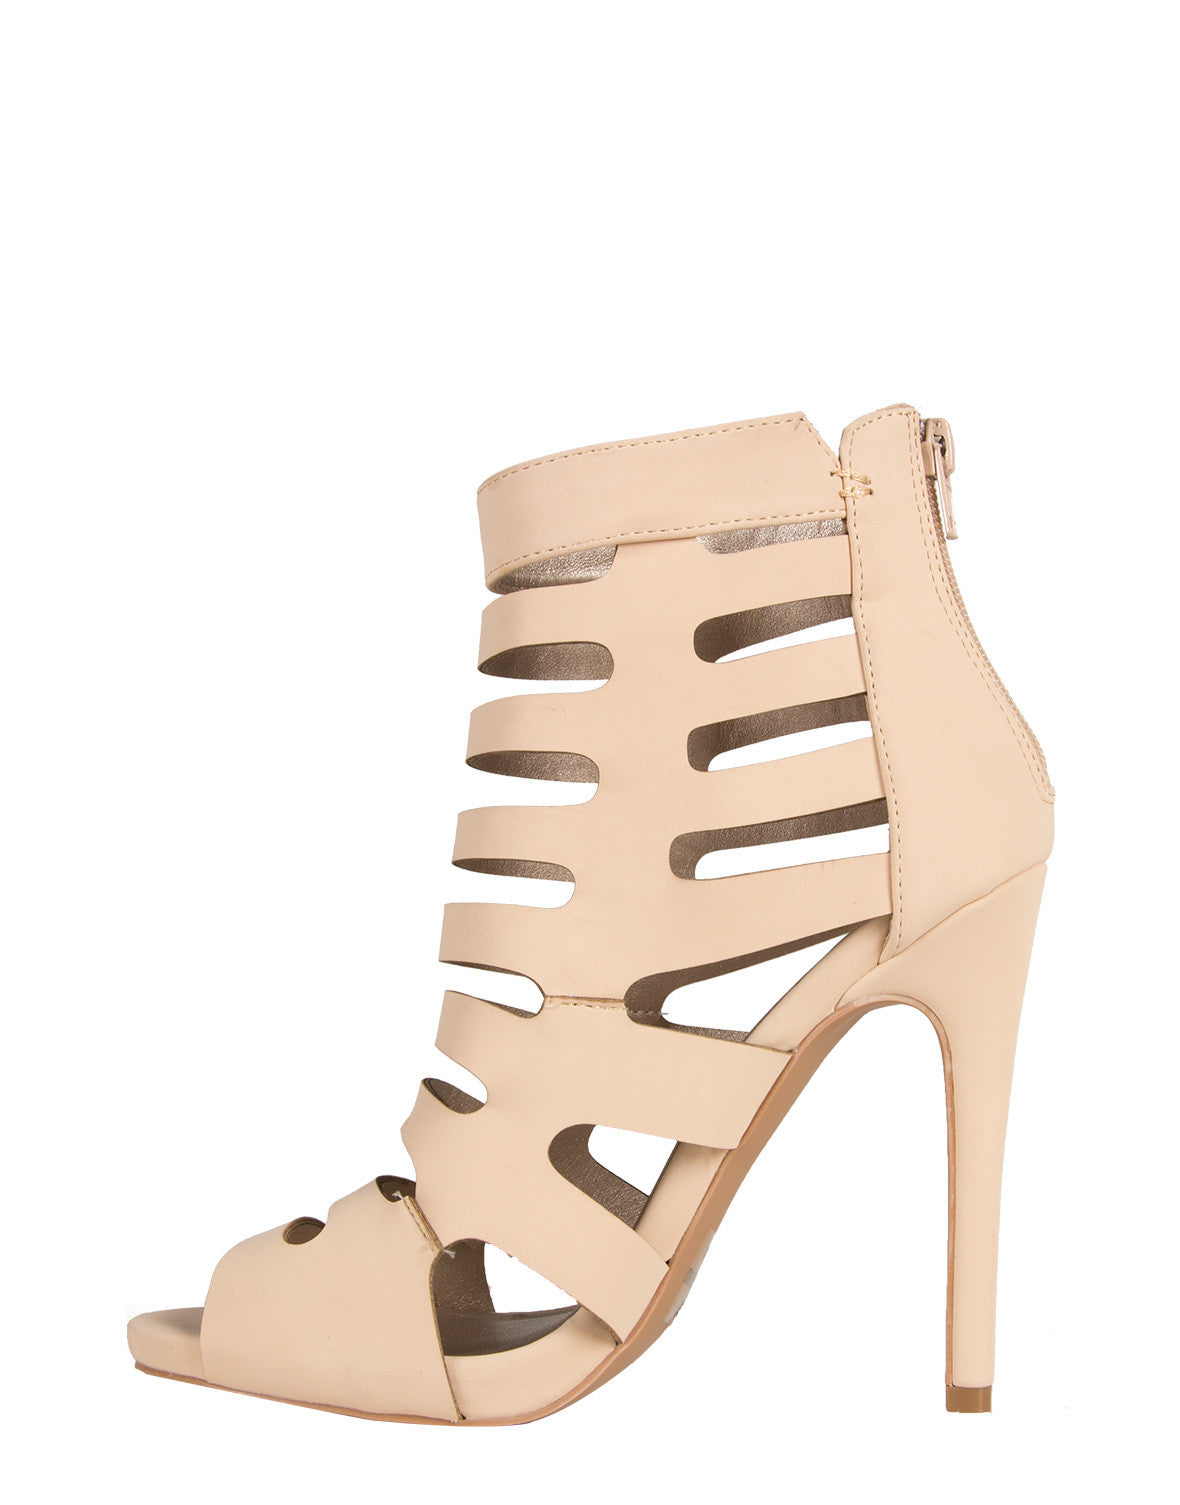 Peep Toe Caged Heels Qupid Glee-16 nude